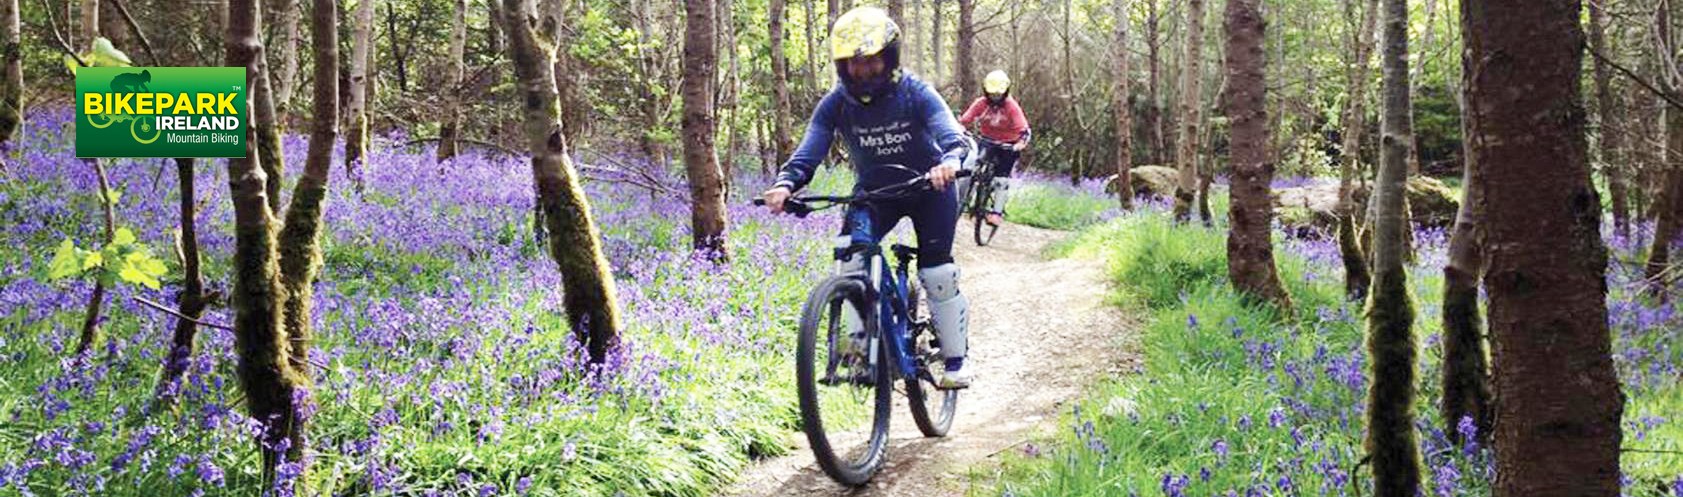 fun activity mountain biking at Bike Park Ireland copy